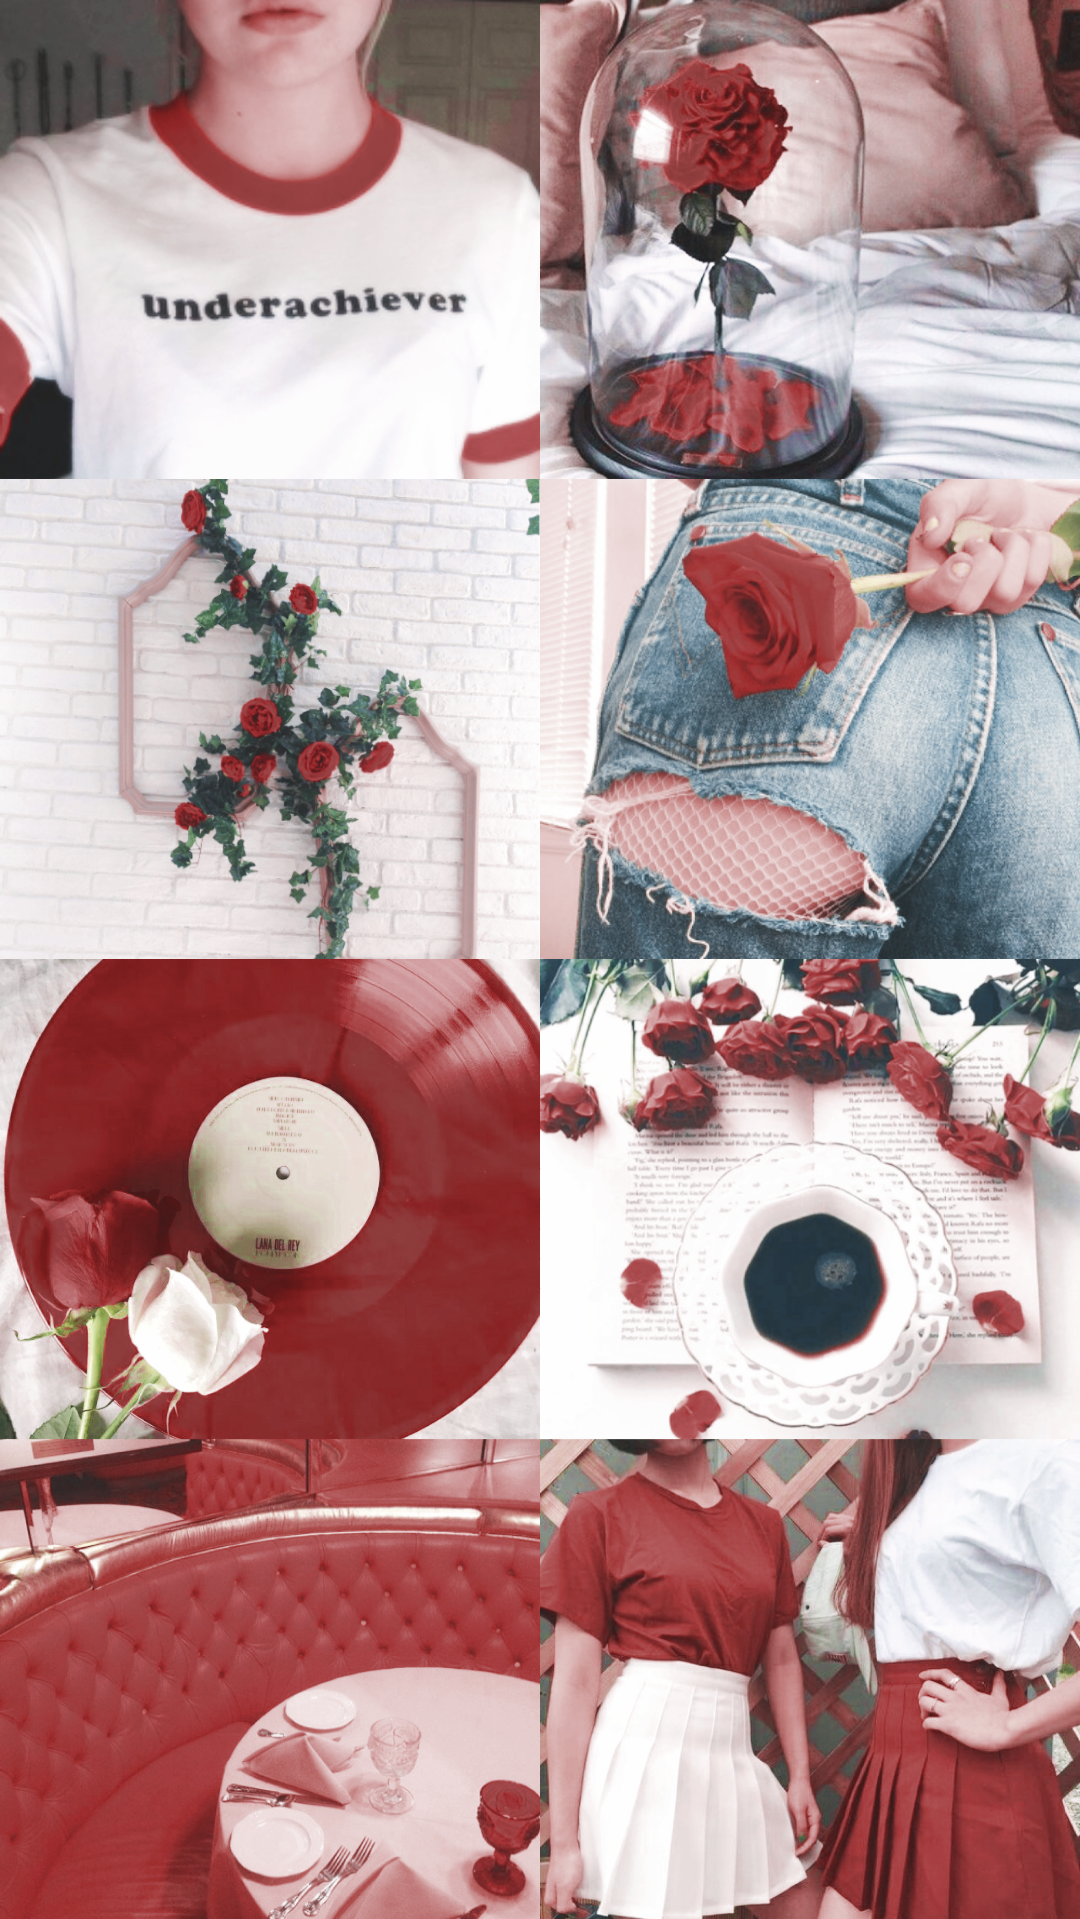 Locks Bea Miller Like Or Reblog If U Save It Aesthetic Pastel Wallpaper Aesthetic Wallpapers Aesthetic Iphone Wallpaper